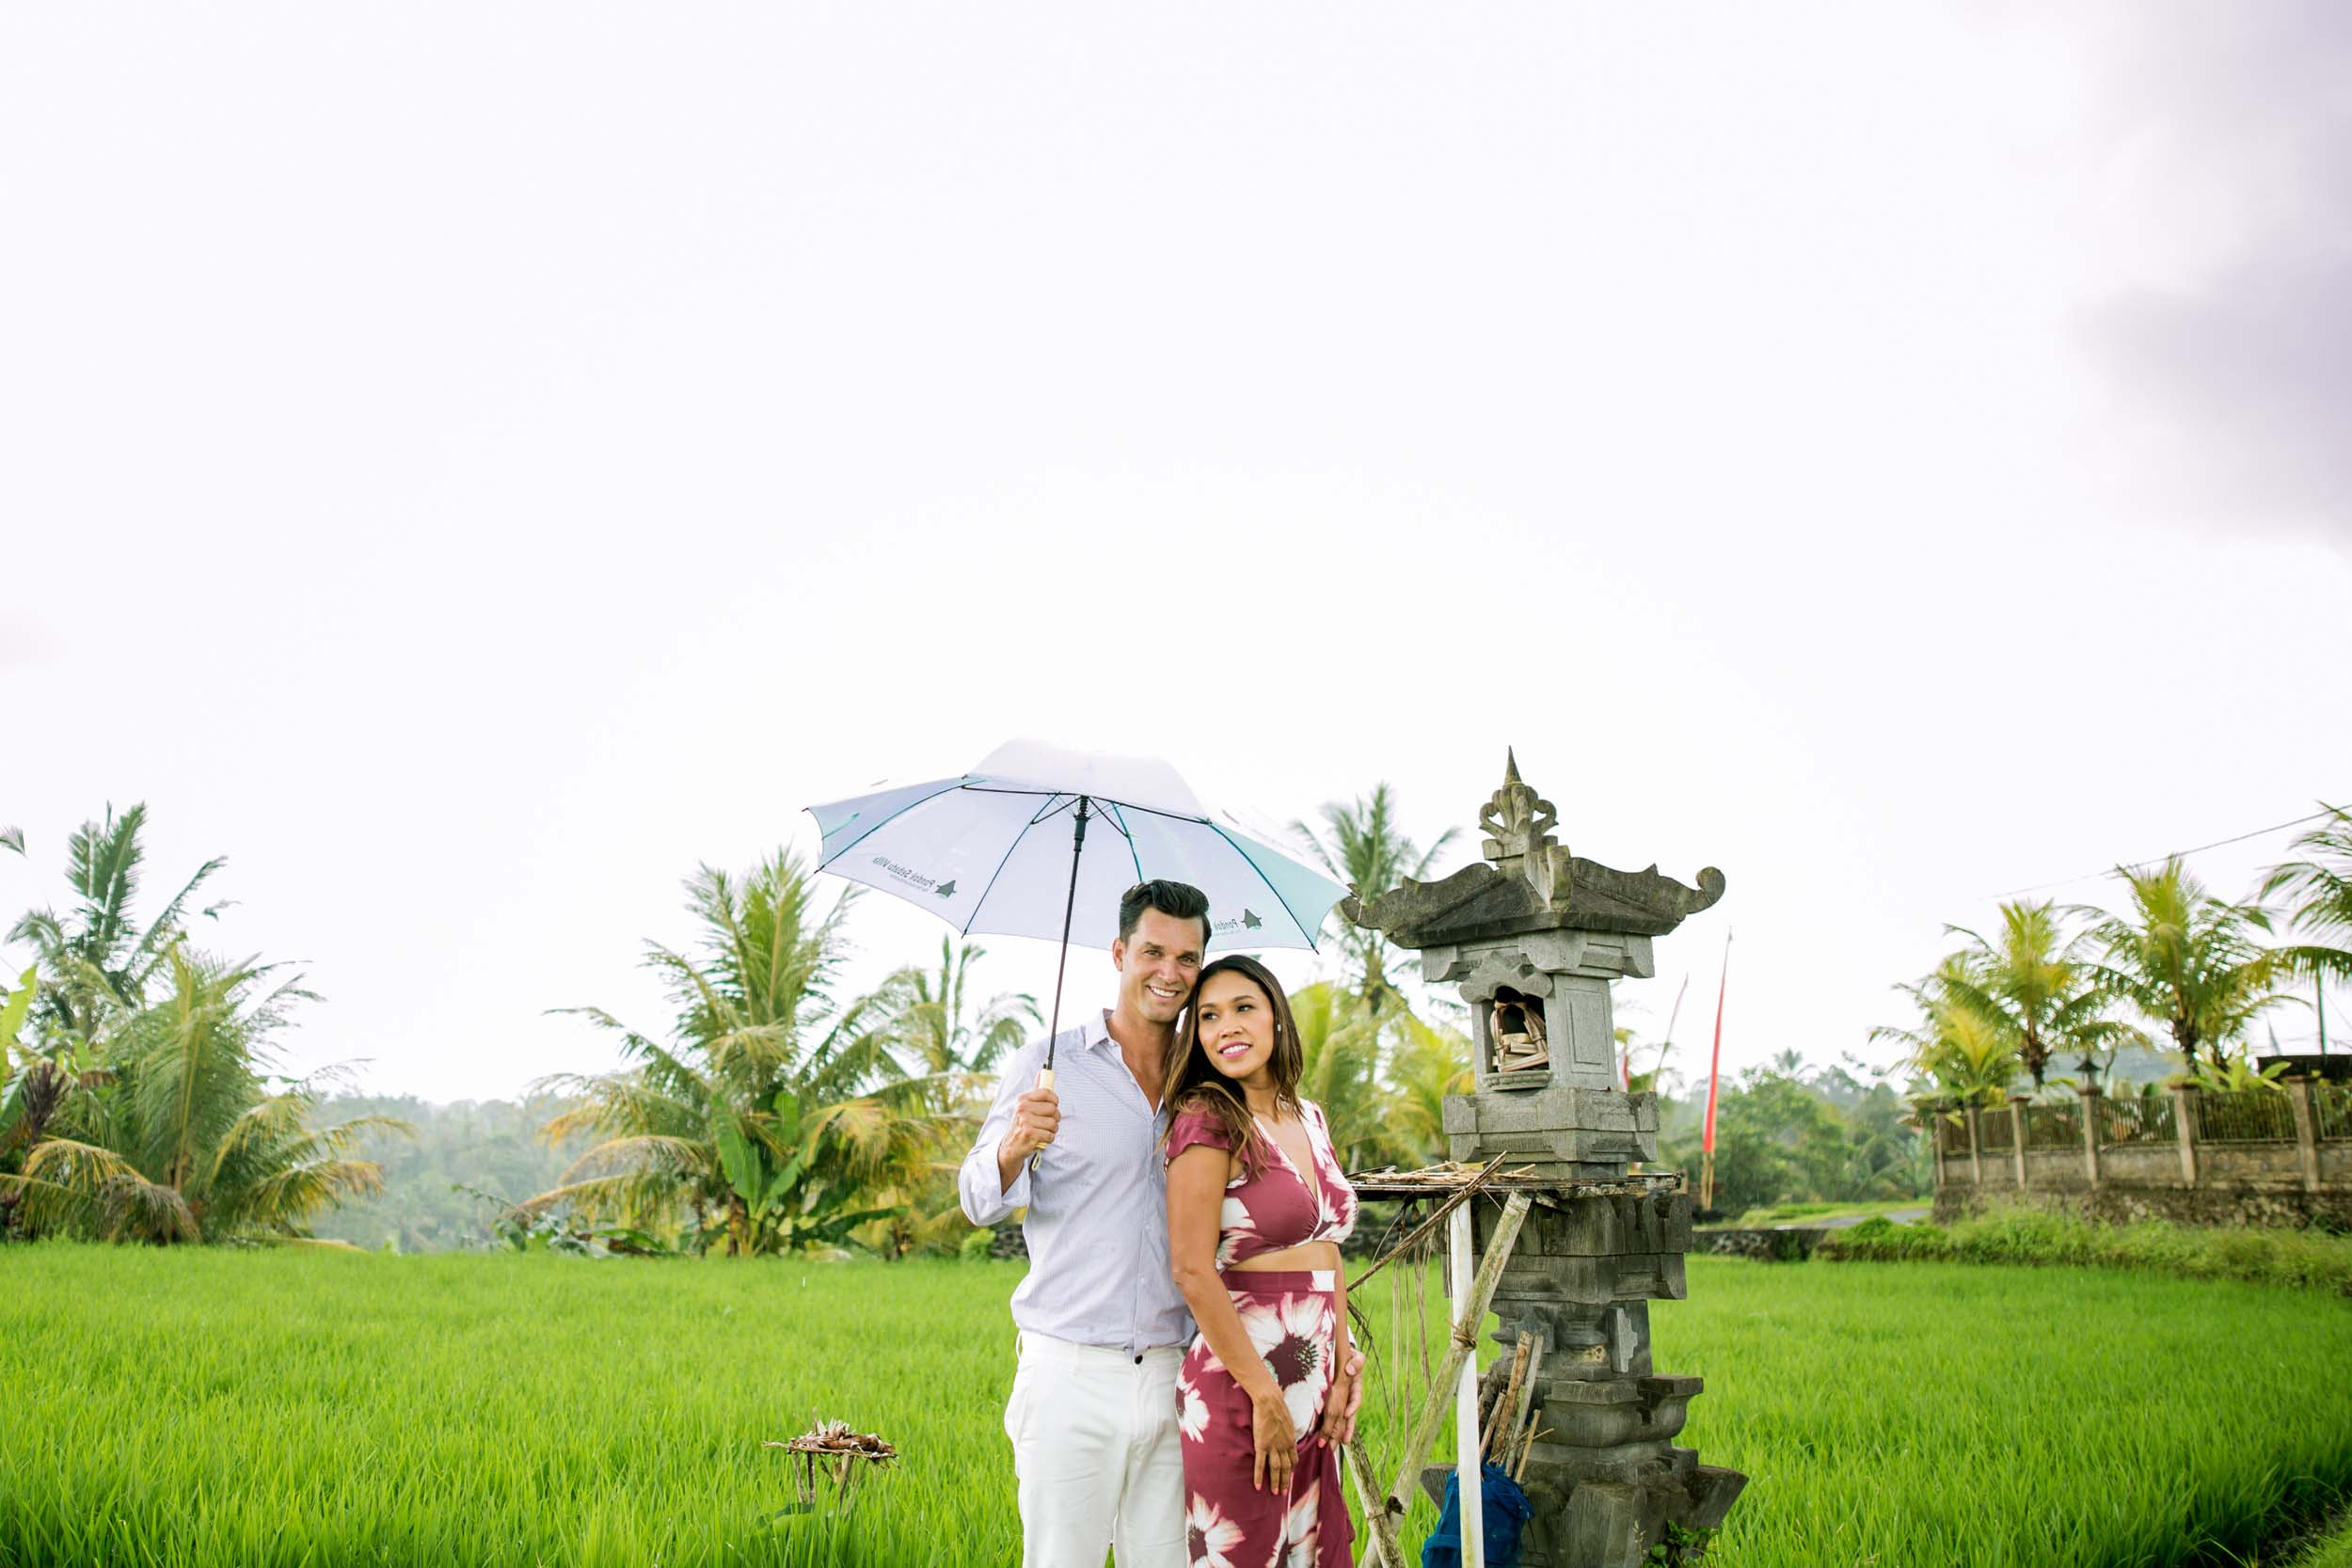 Image Result For Bali Vacation Photographer